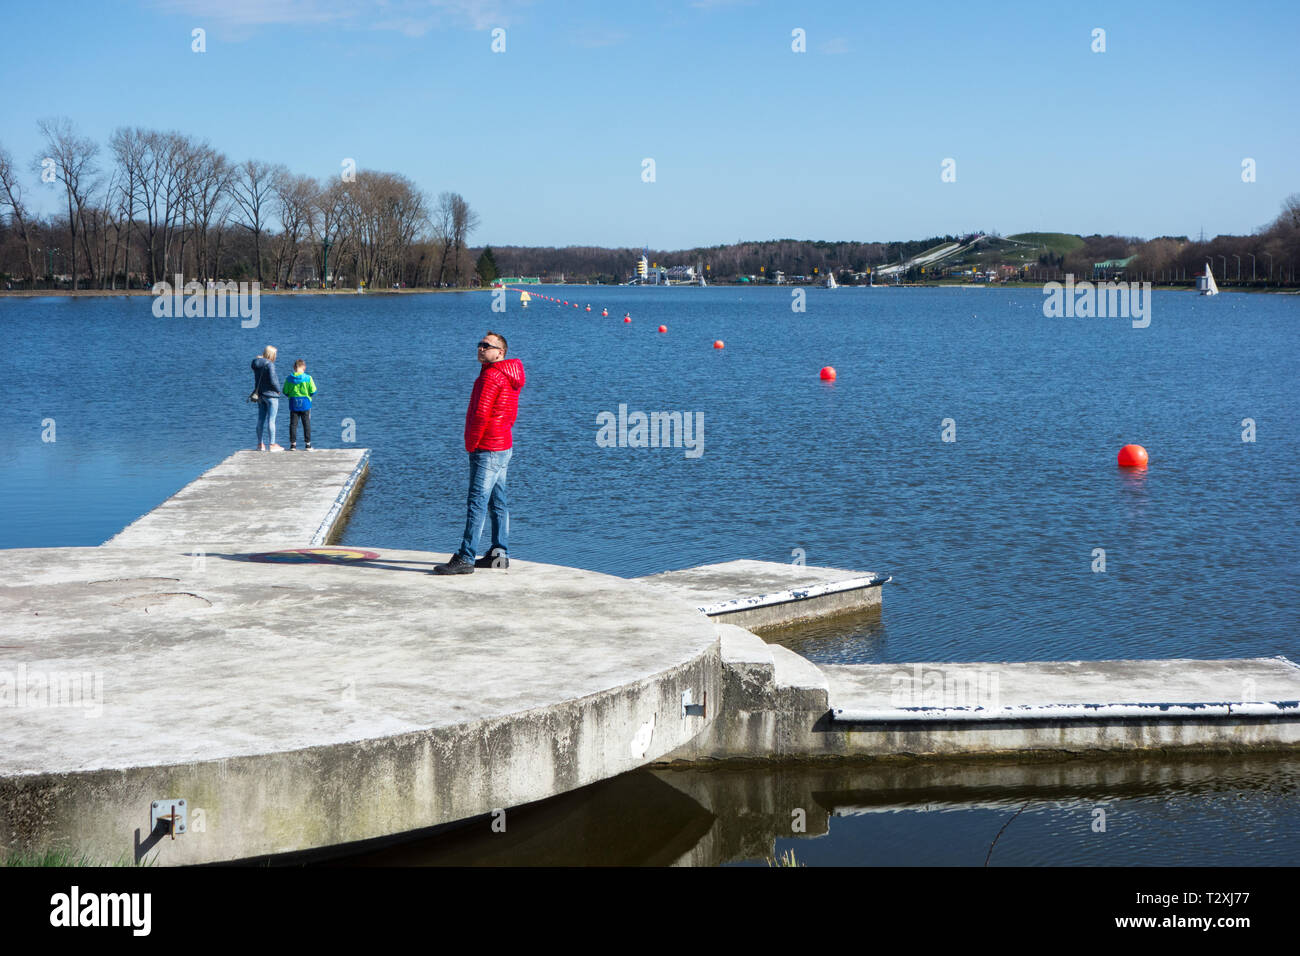 Lake Malta, or  Maltański Reservoir, is an artificial lake in Poznań, Poland. It was formed in 1952 as a result of the damming of the Cybina river - Stock Image